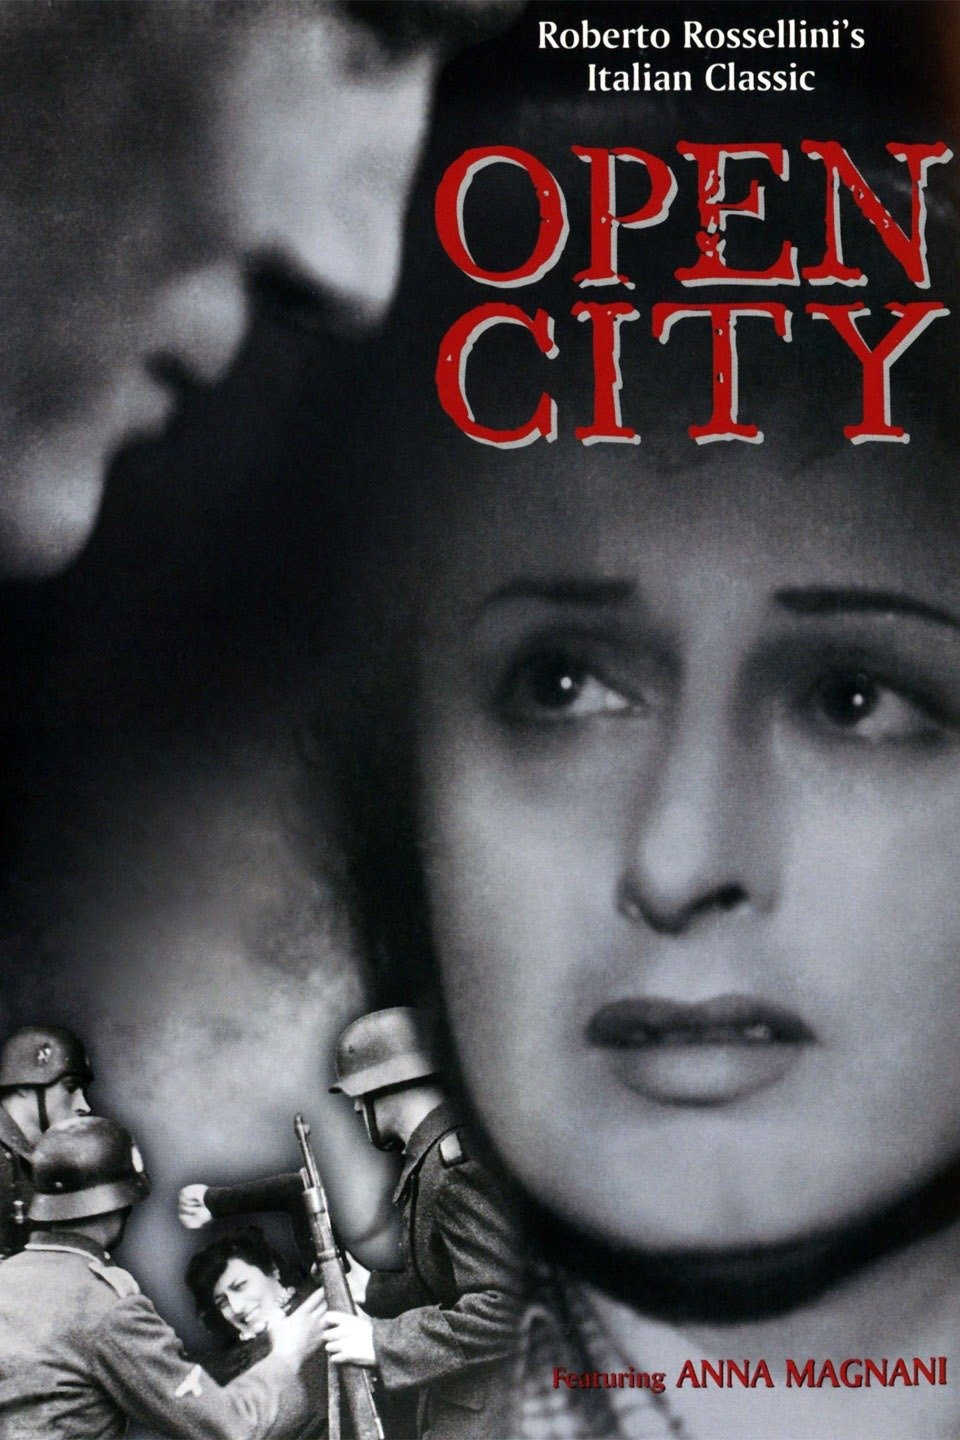 Image of the Open City film cover